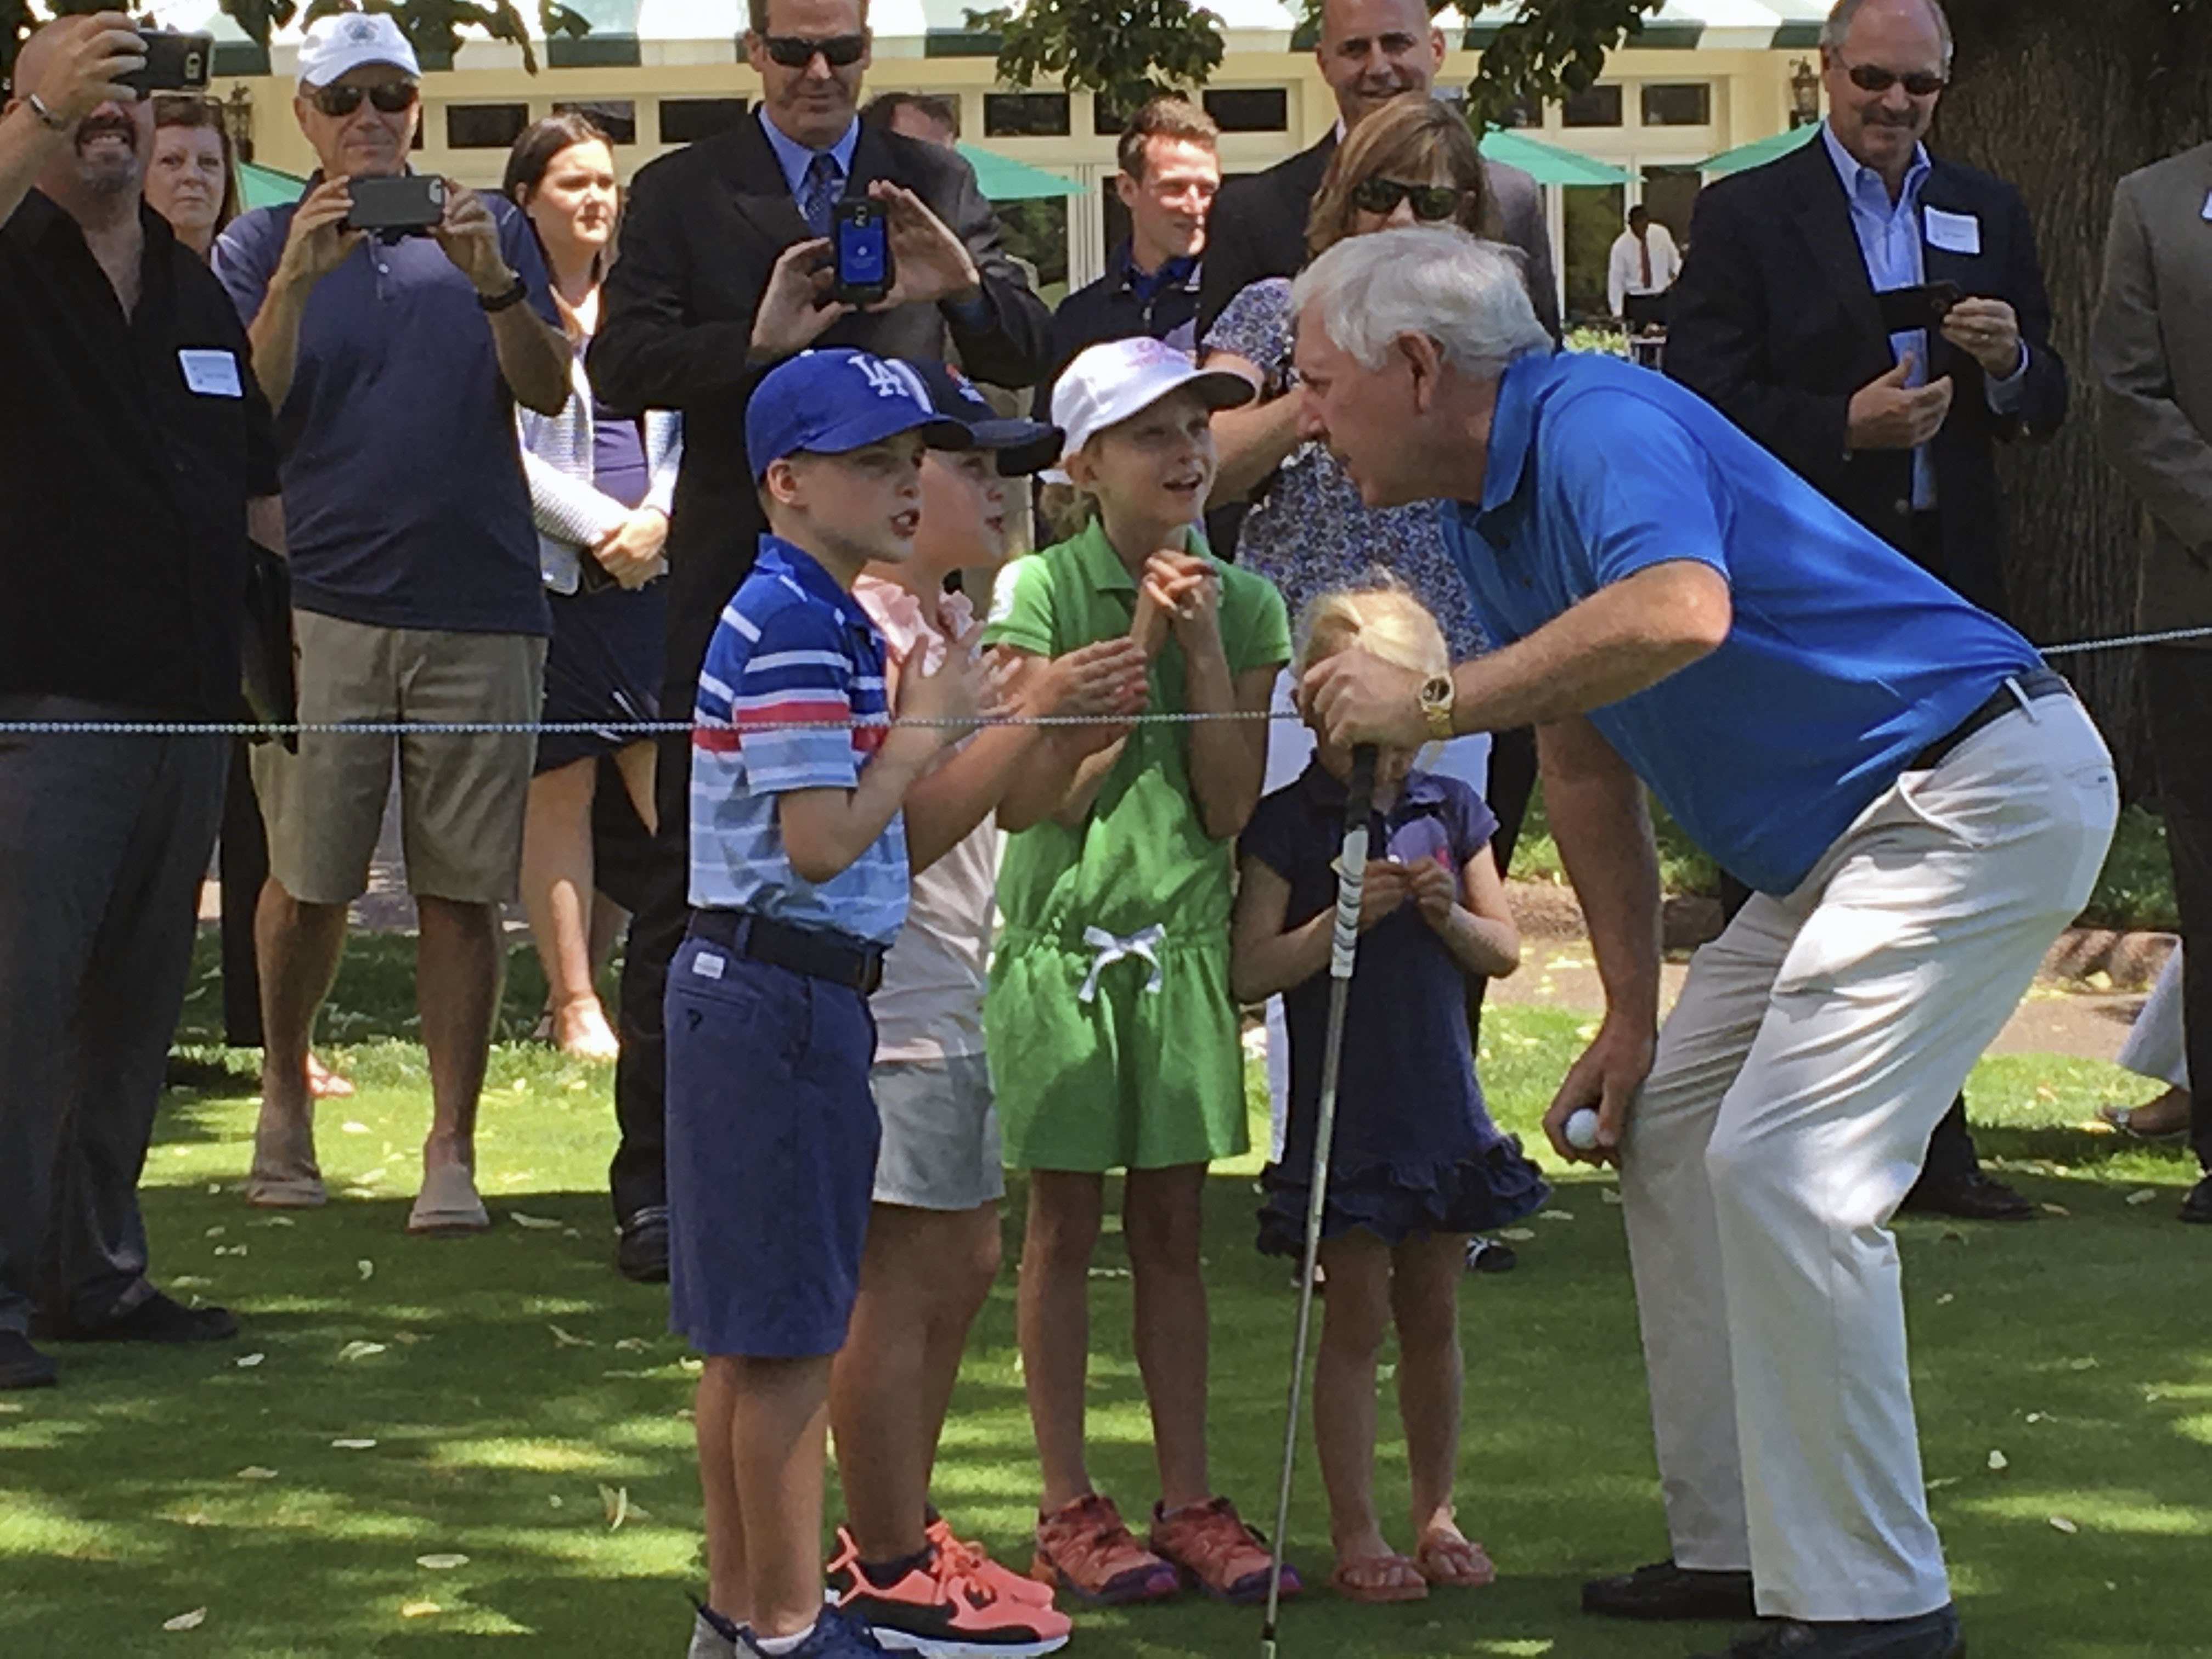 Hale Irwin speaks with children before teeing off on the fourth hole at The Broadmoor's East Golf Course on Tuesday, July 18, 2017 in Colorado Springs, Colo. Irwin's tee shot capped the launch party for the 2018 U.S. Senior Open, where  Denver Broncos gen